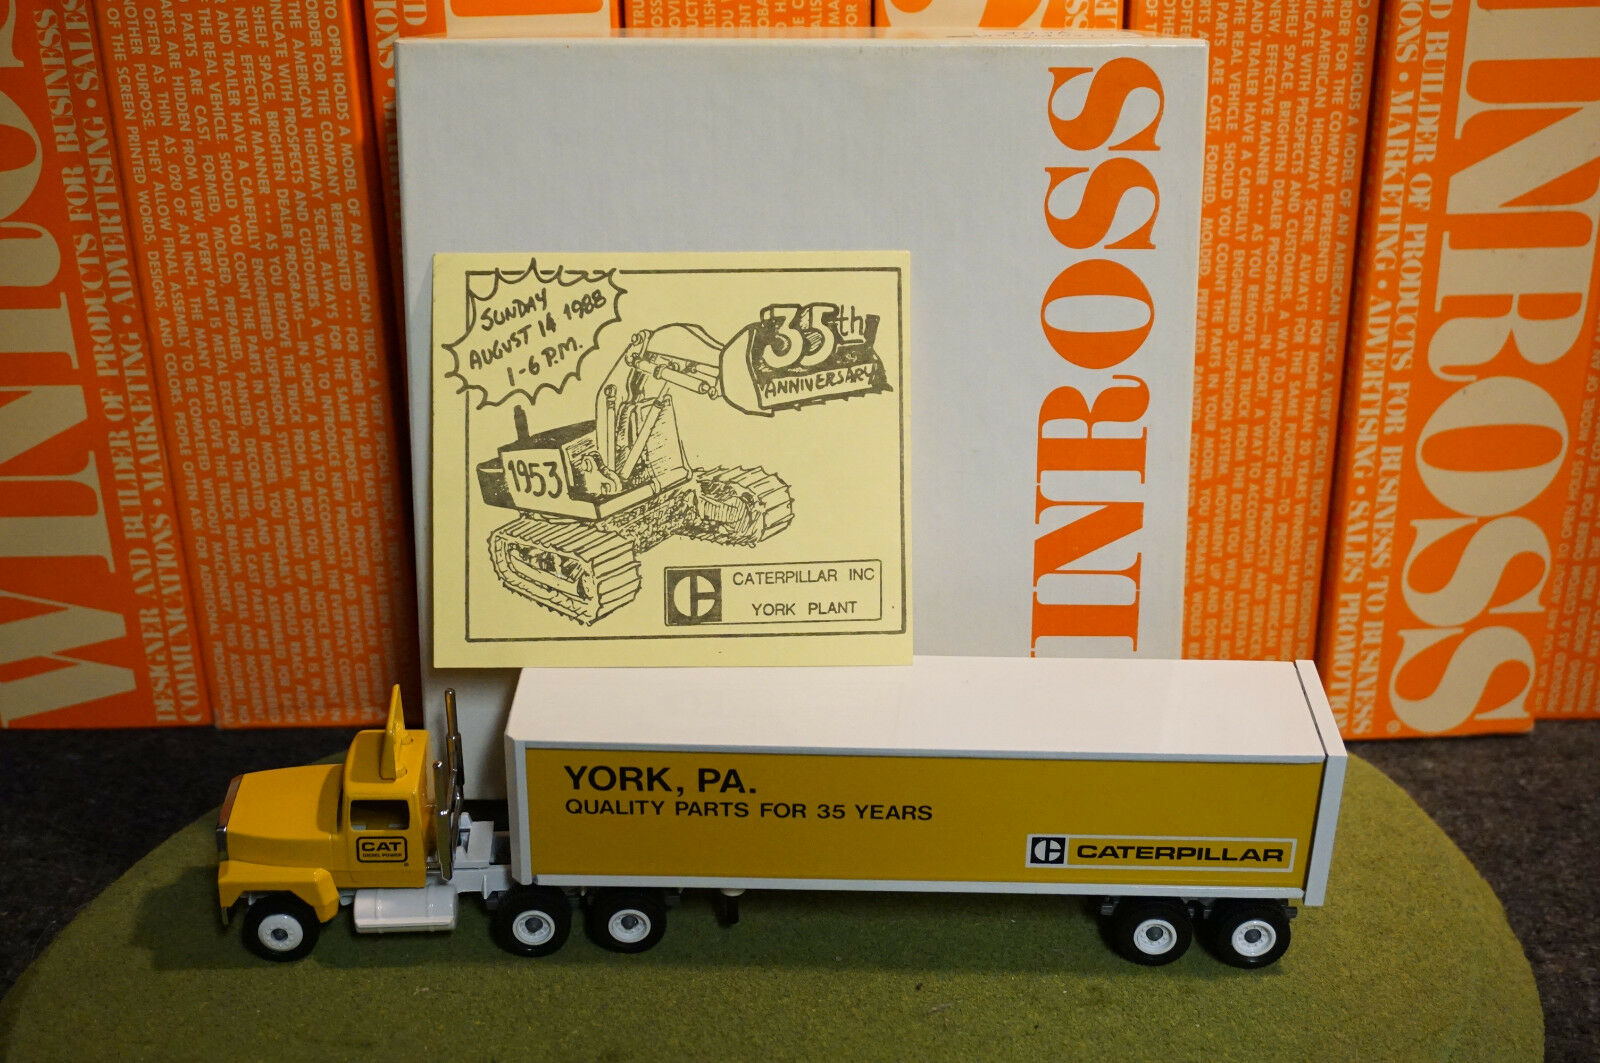 WINROSS DIECAST 1 64 SCALE Camion CATERPILLAR York, PA CARGO 1988